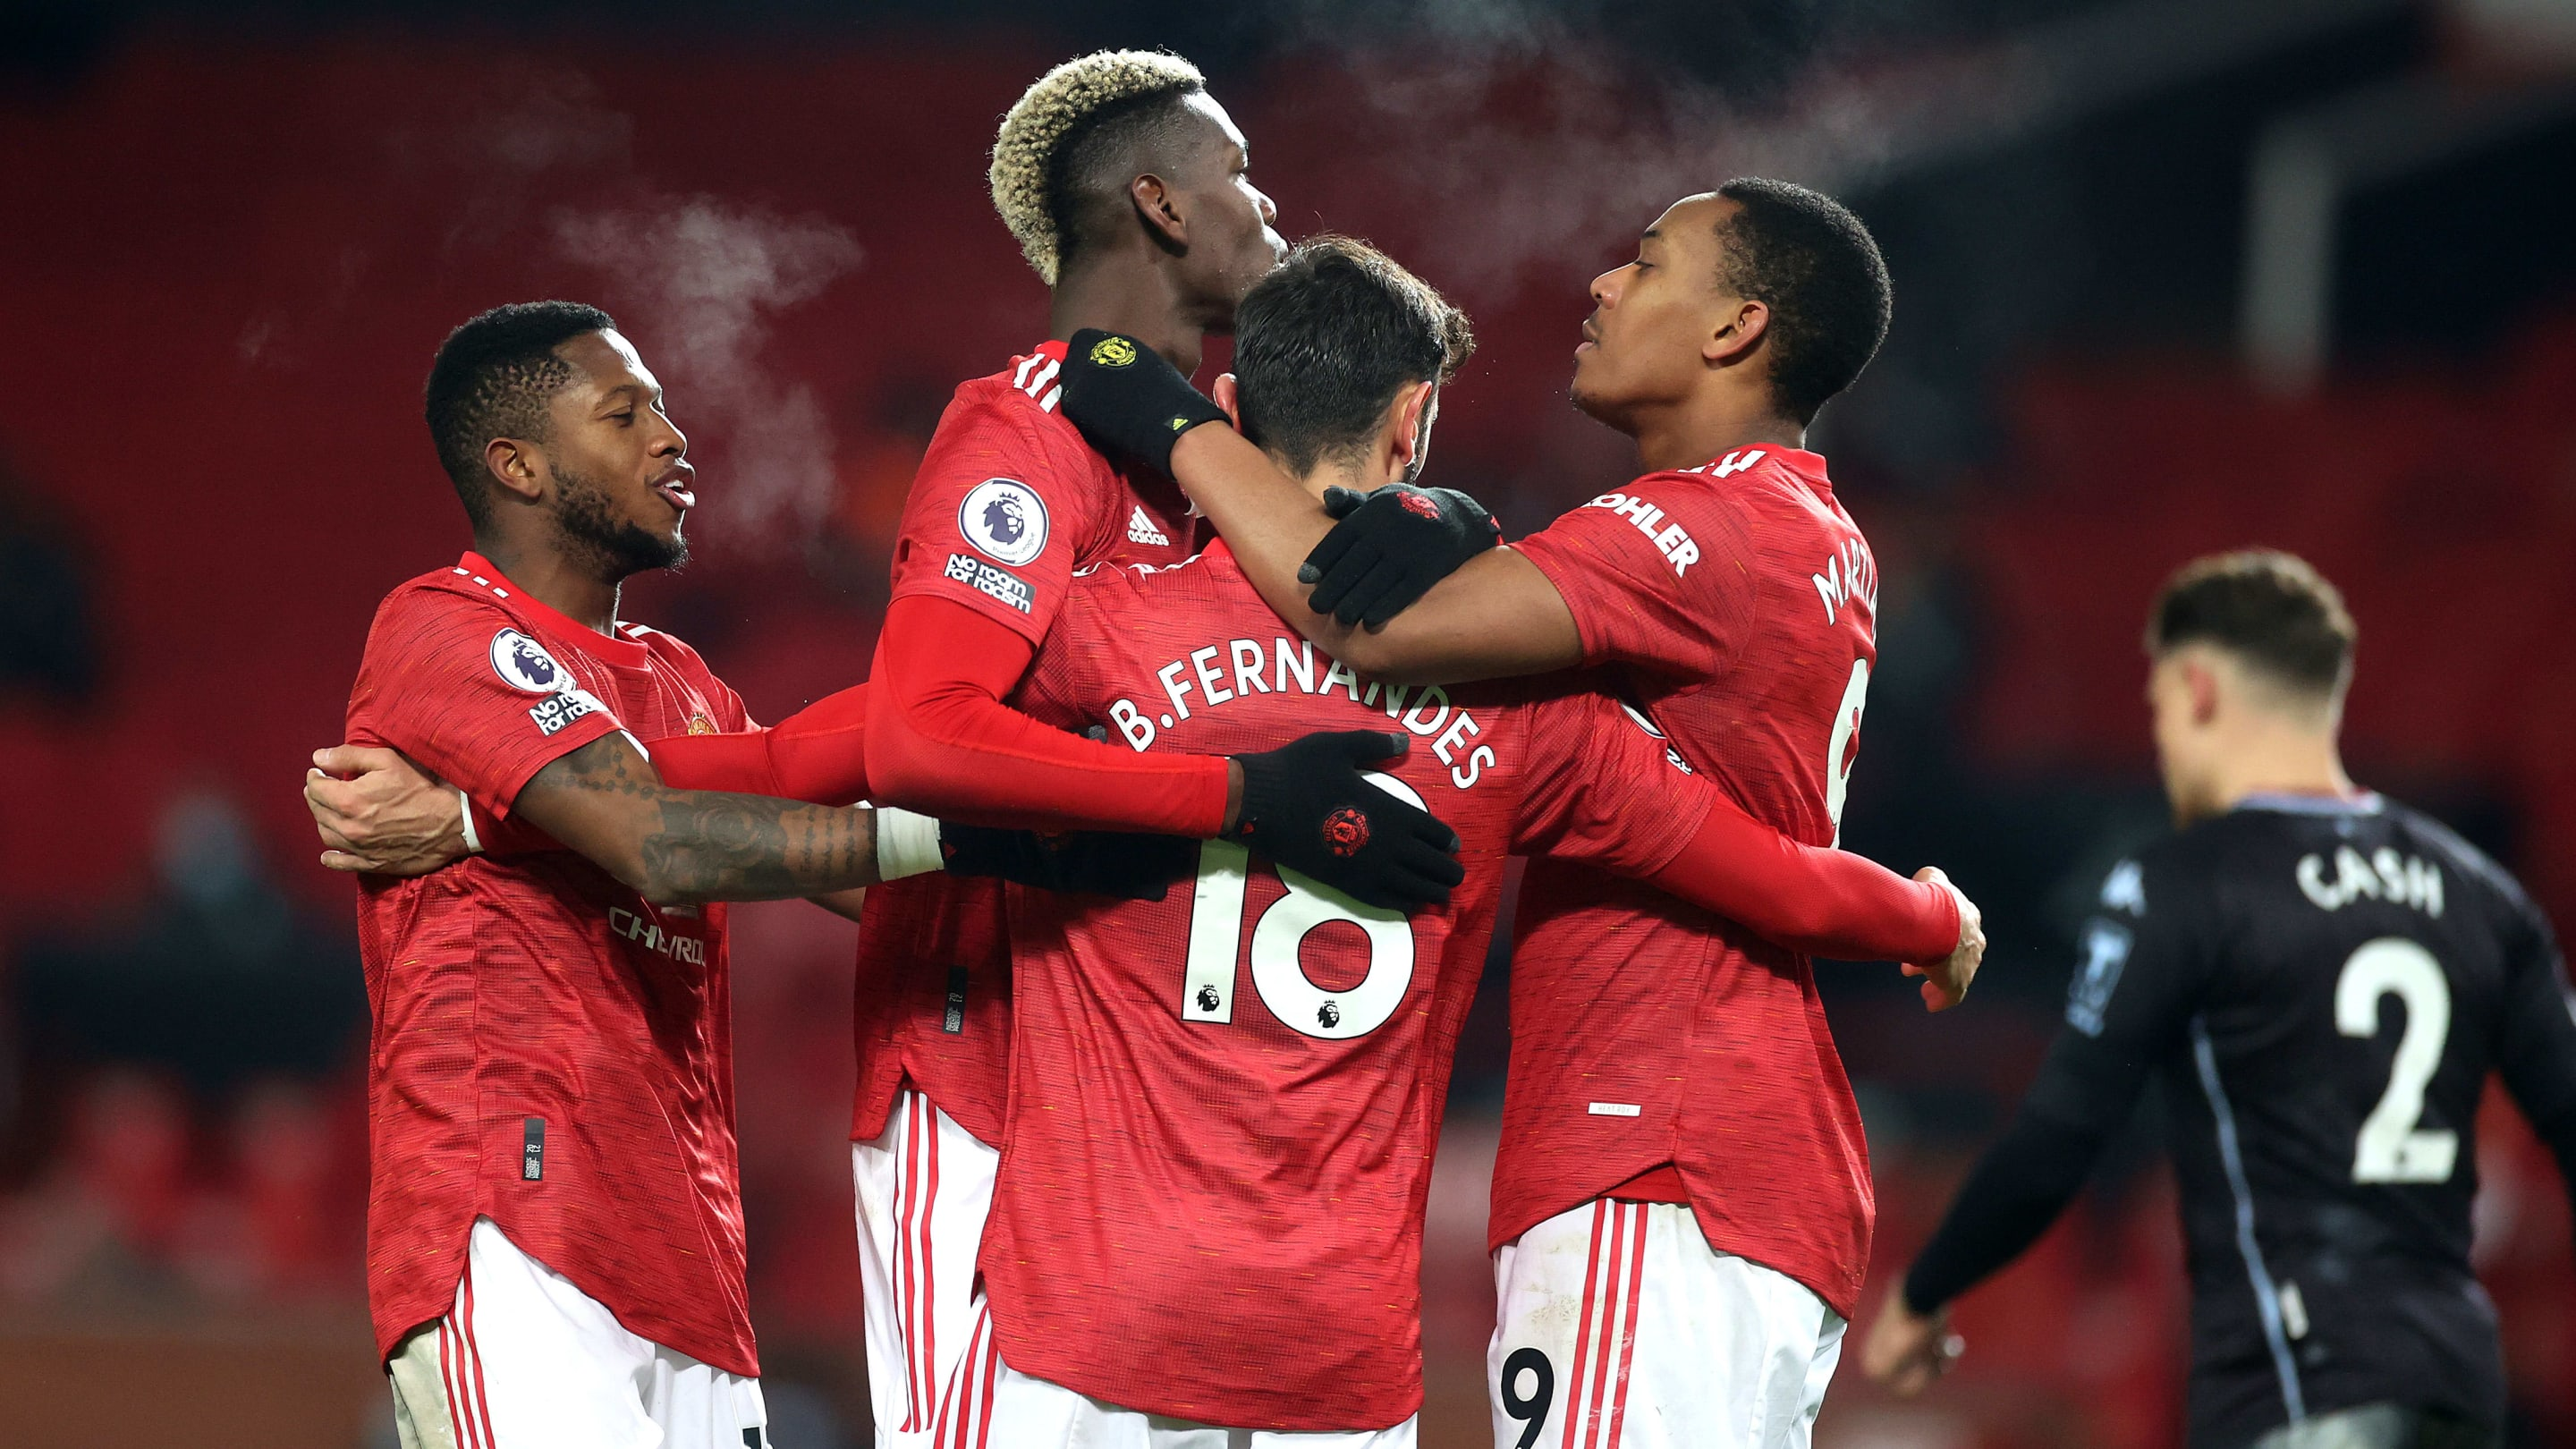 Manchester United 2-1 Aston Villa - Player ratings as Red Devils kick off new year with exciting win